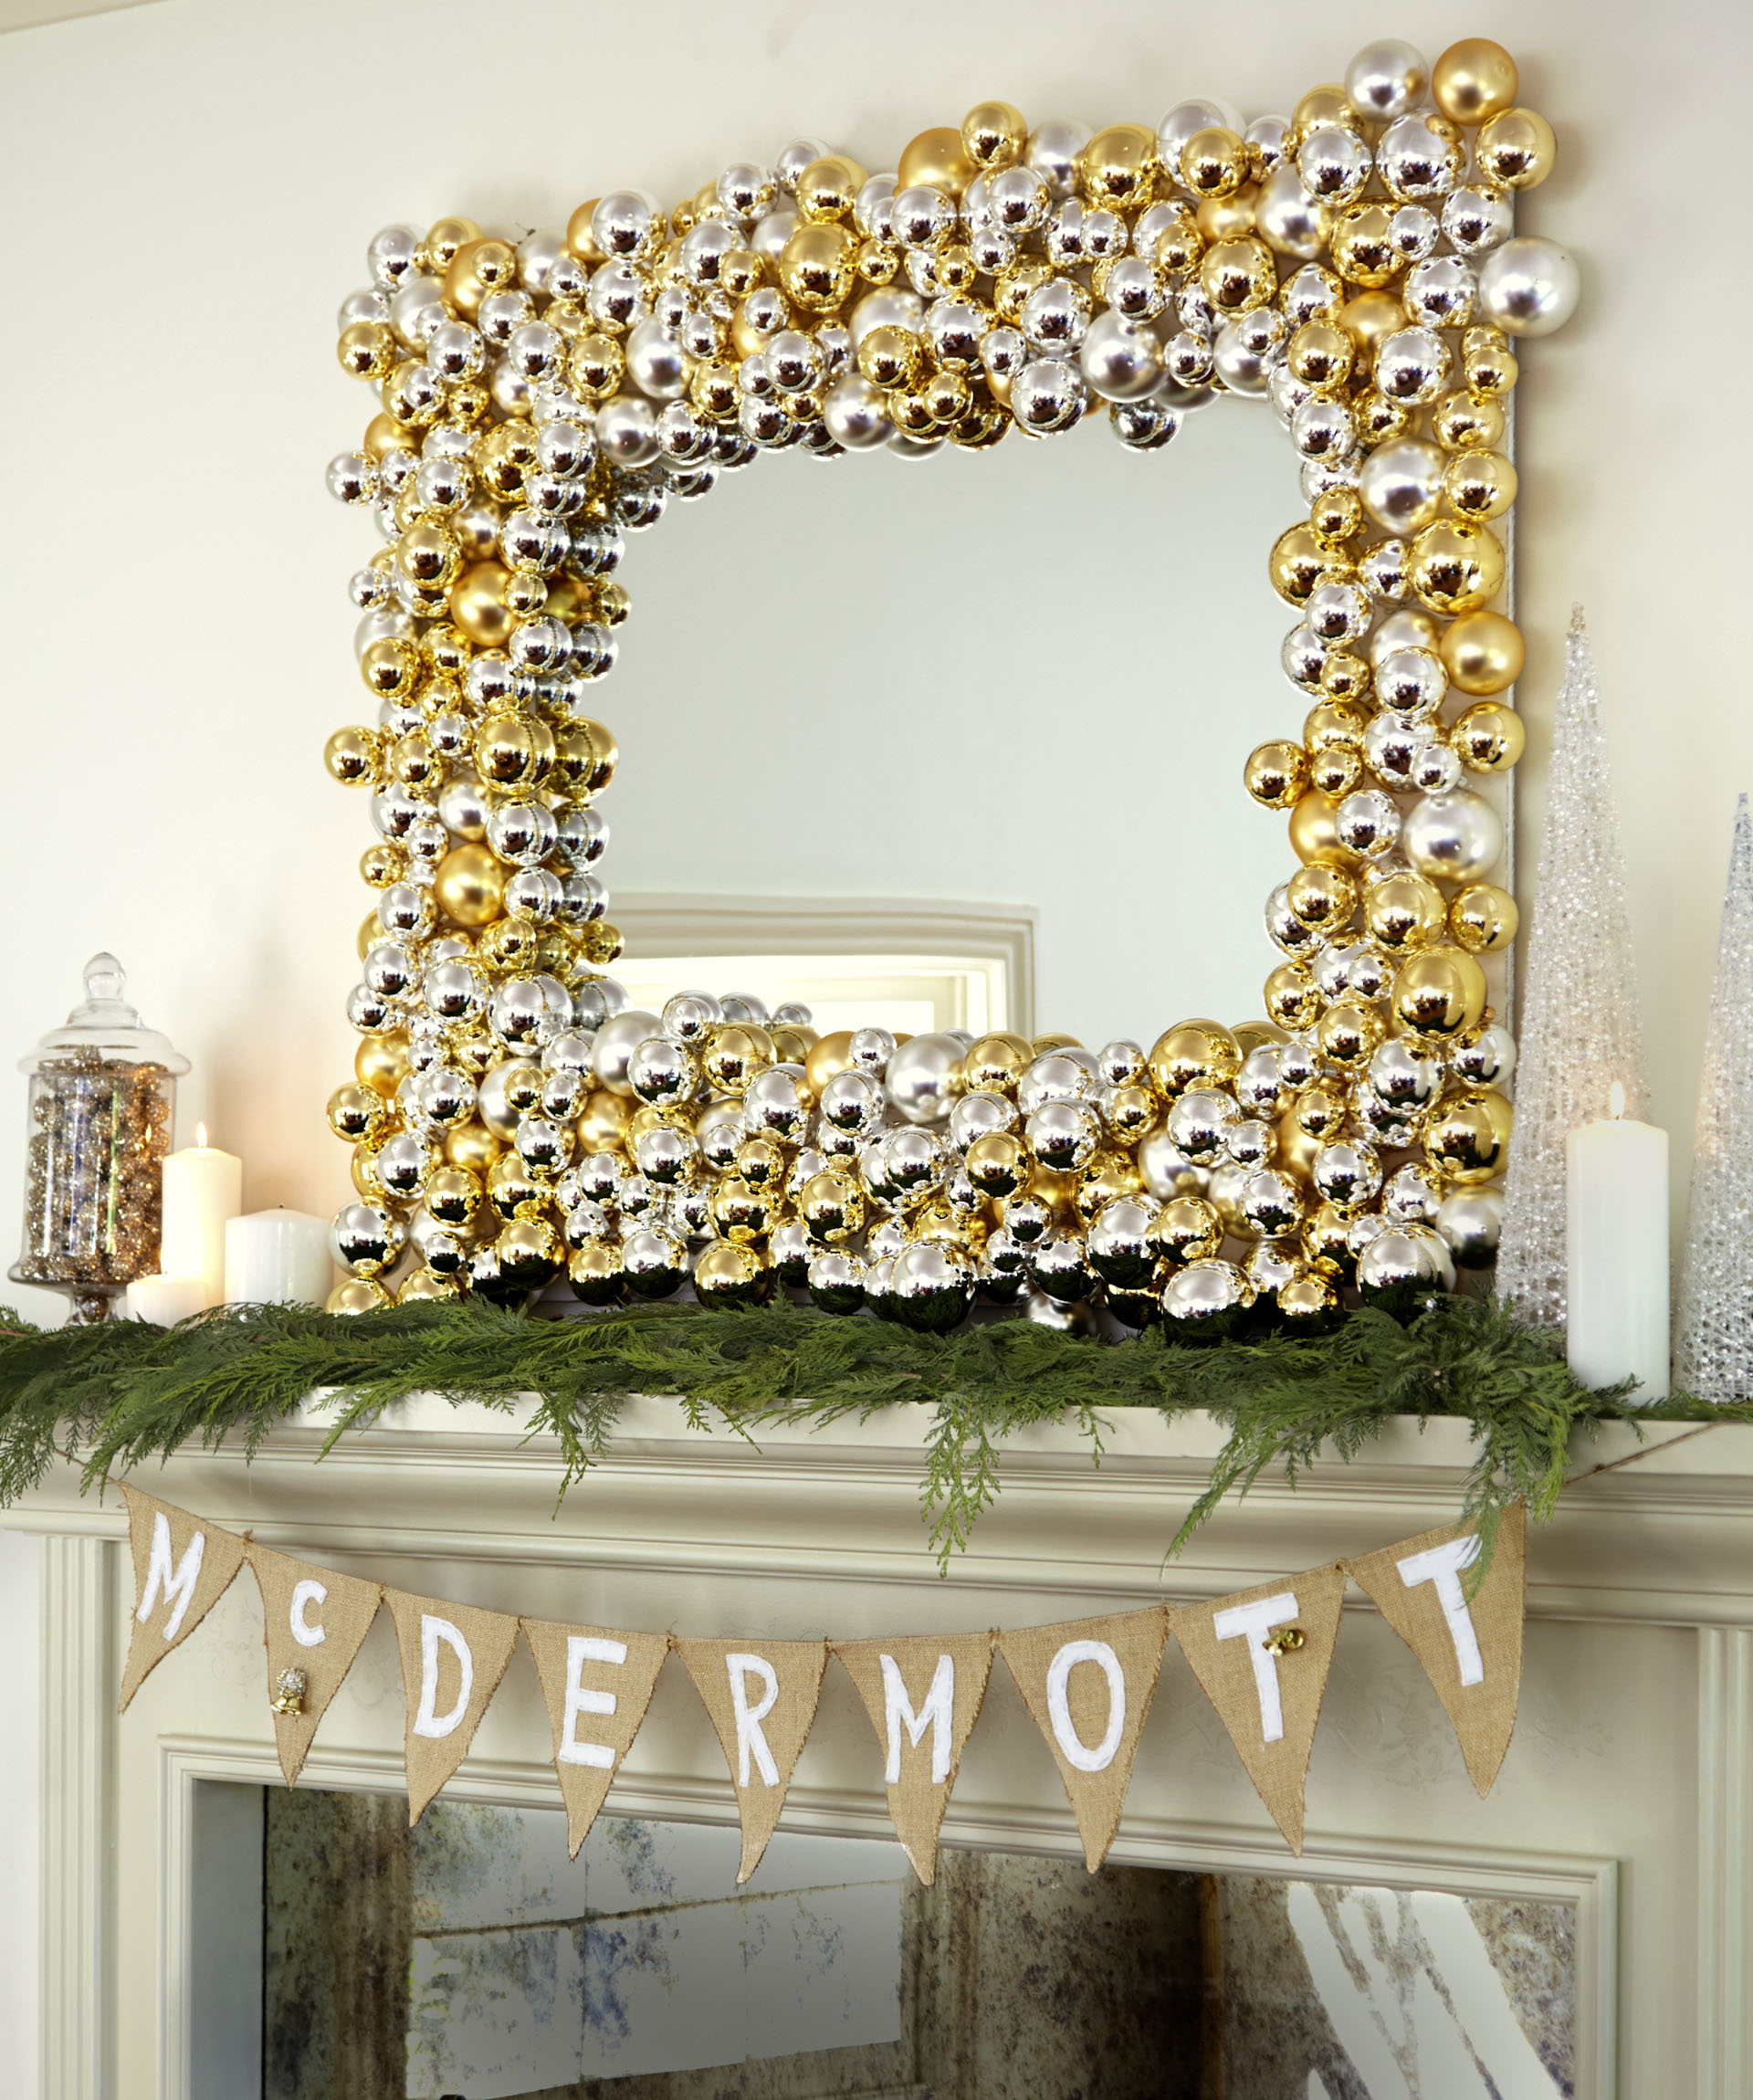 Christmas Decorations Holiday Decorations Decor: DIY Holiday Decor Ideas From Tori Spelling